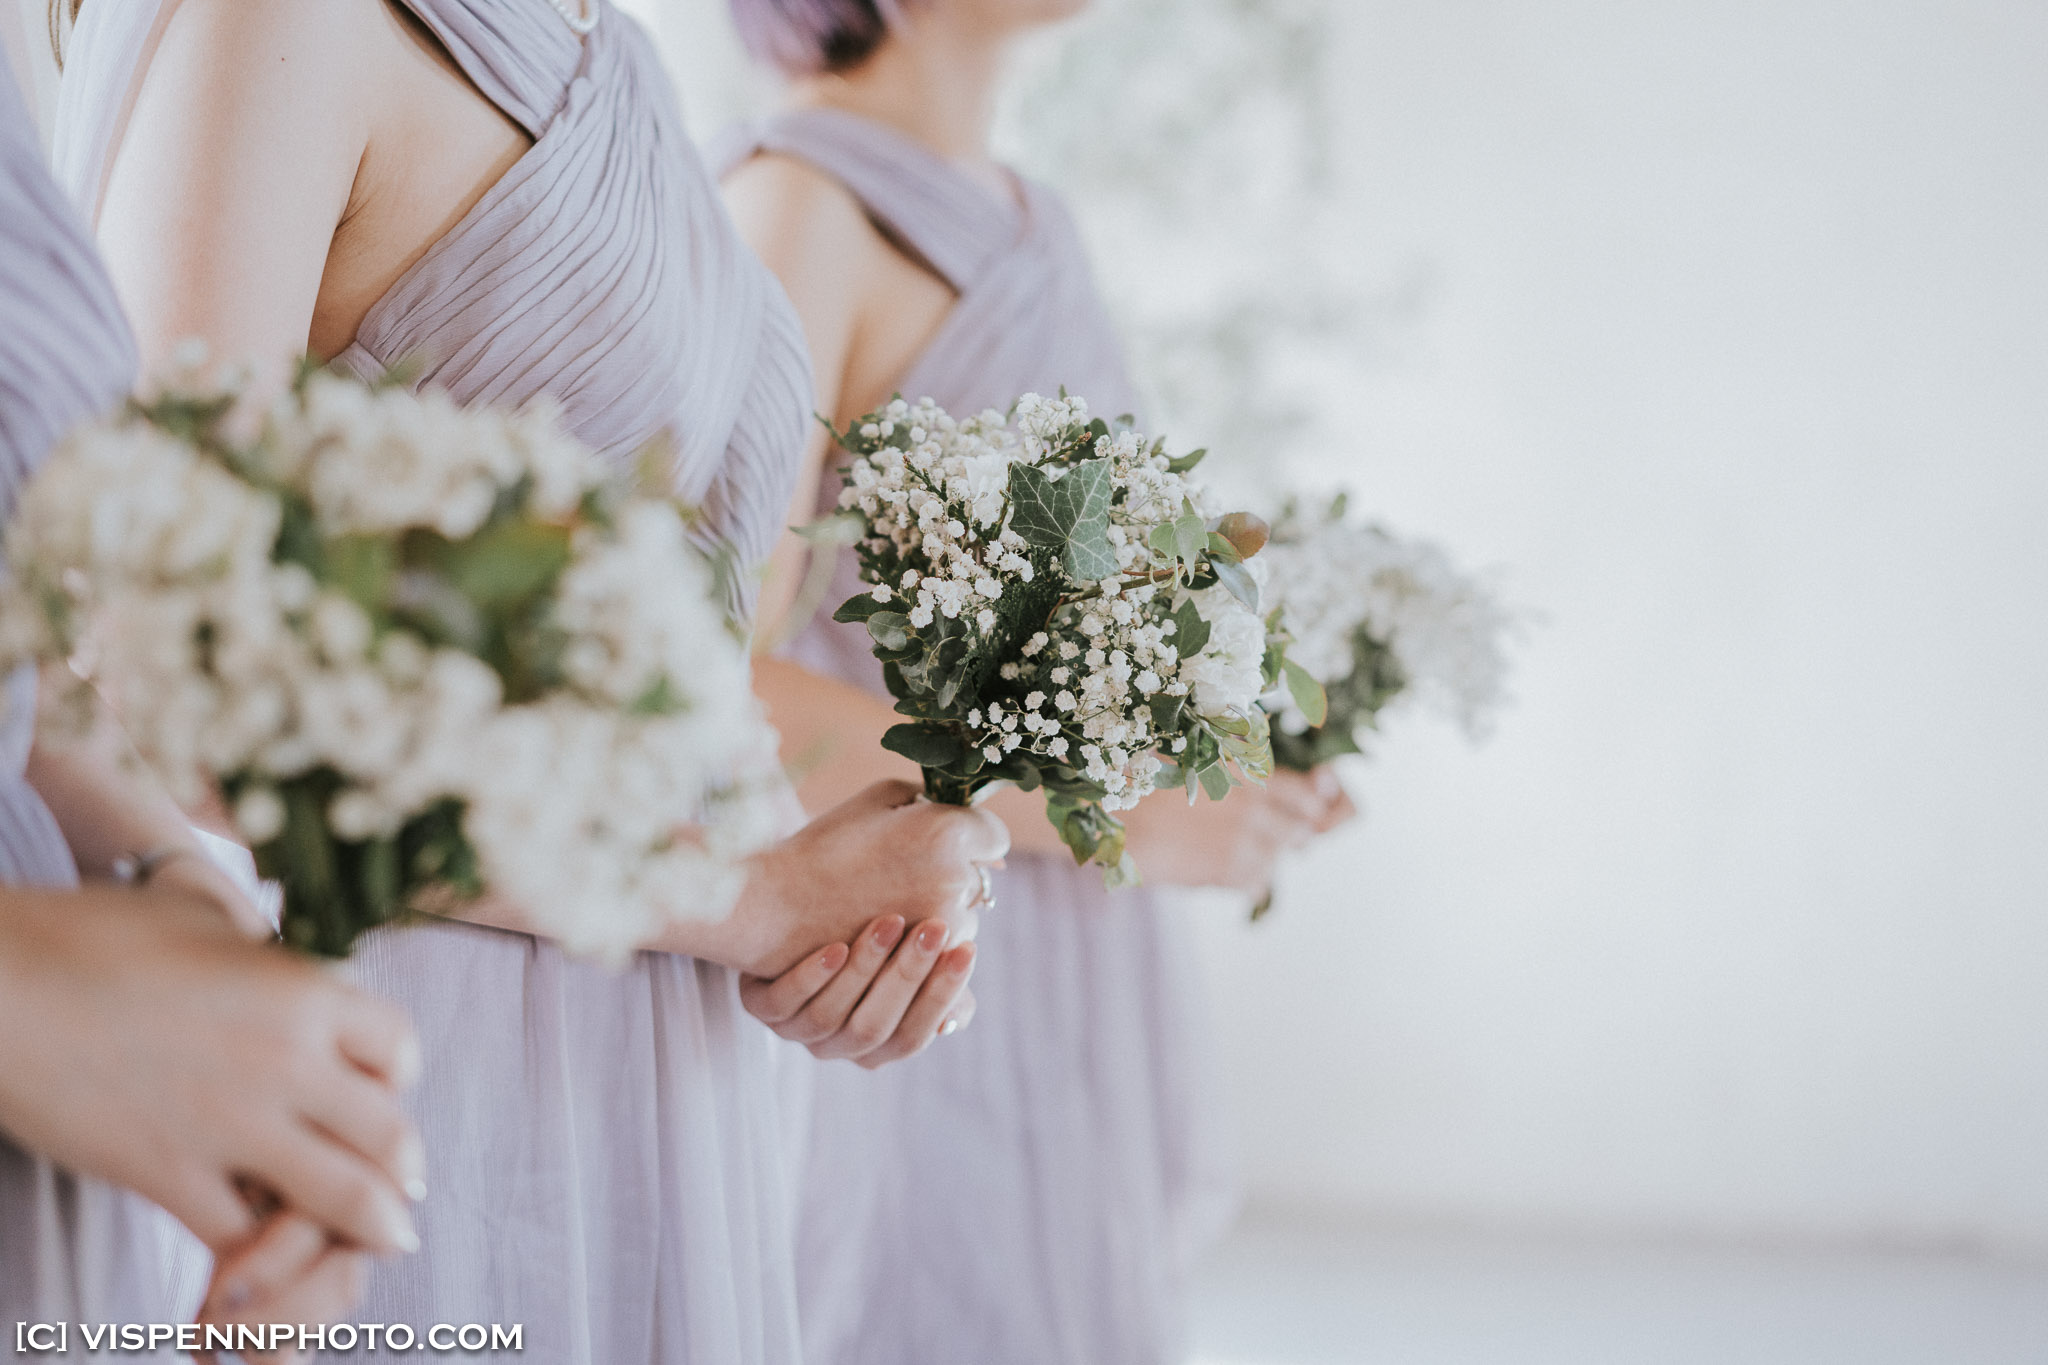 WEDDING DAY Photography Melbourne LeanneWesley 04607 4H A7R3 ZHPENN